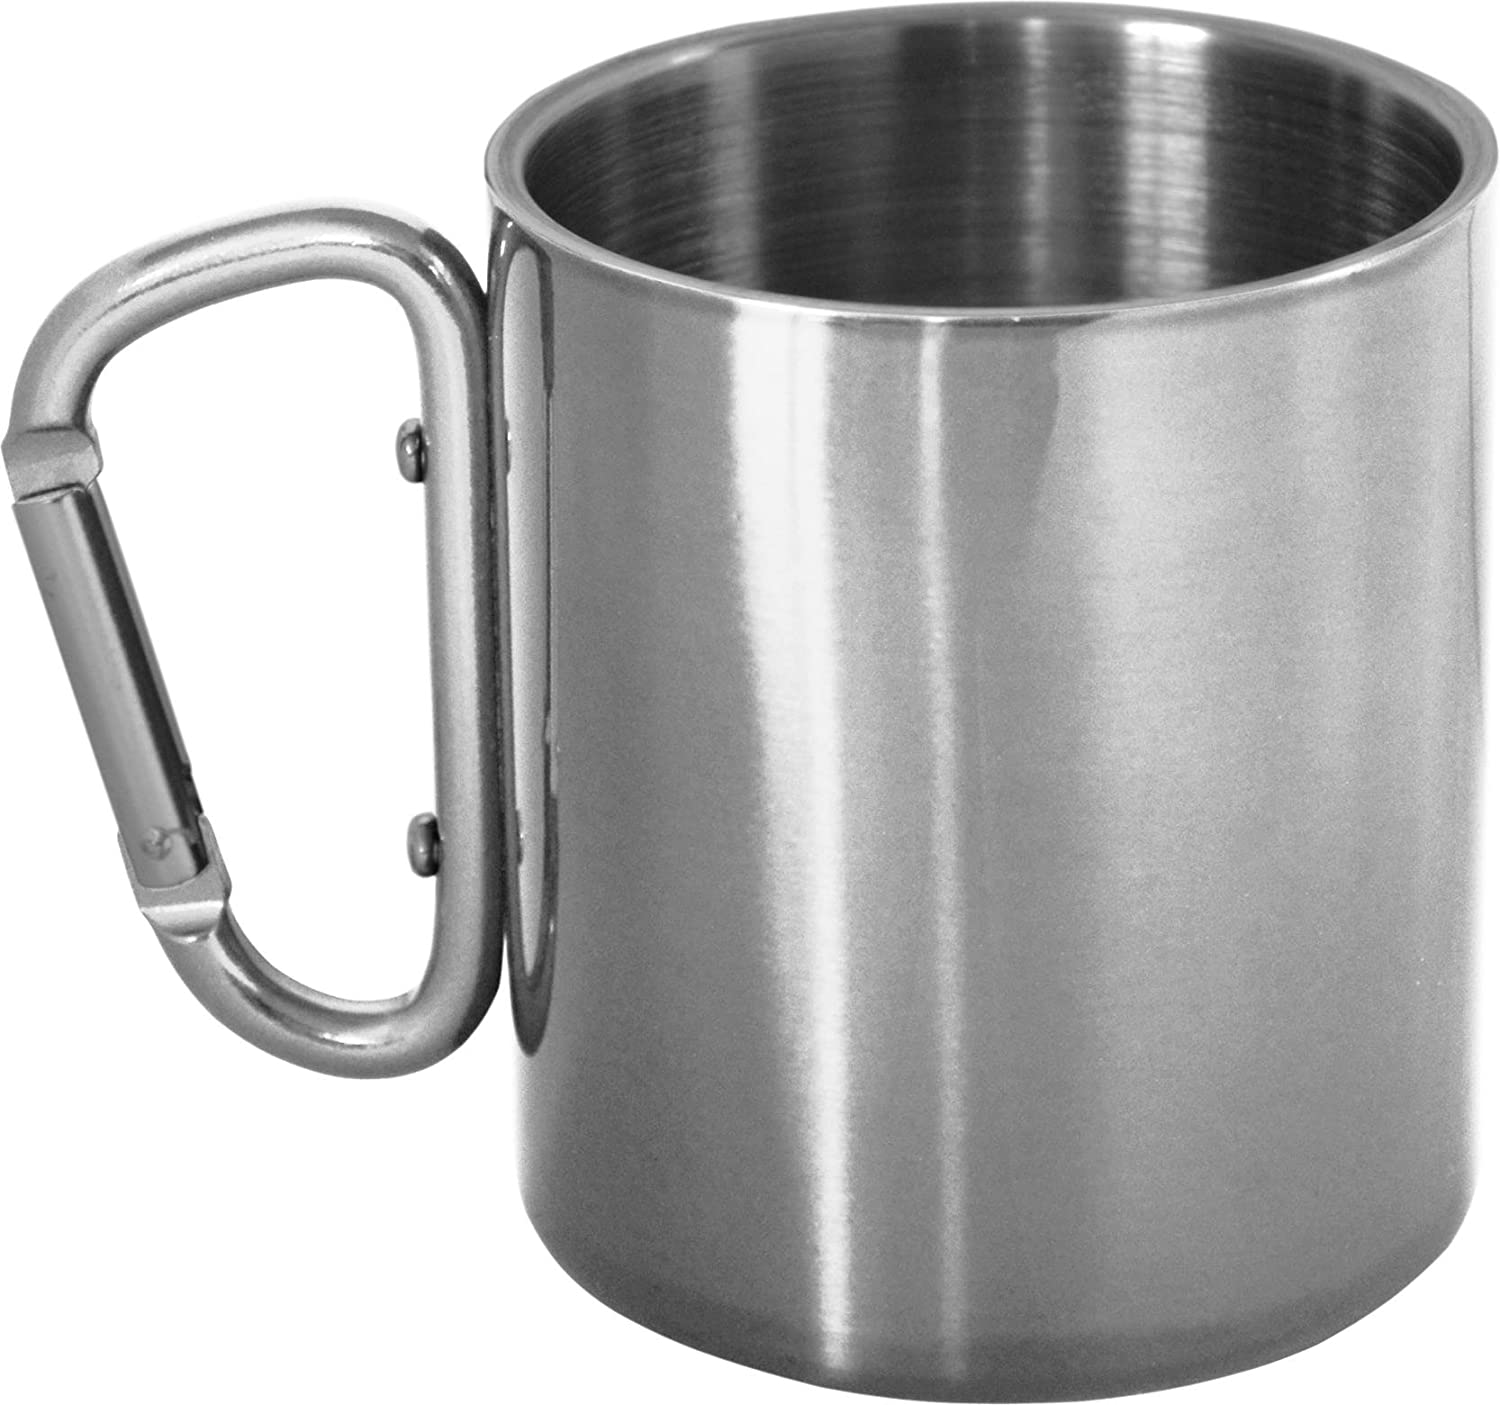 Double Walled Stainless Steel Coffee Cup with Carabiner Hook for Attaching Flask to Rucksack Silber normani 19538304